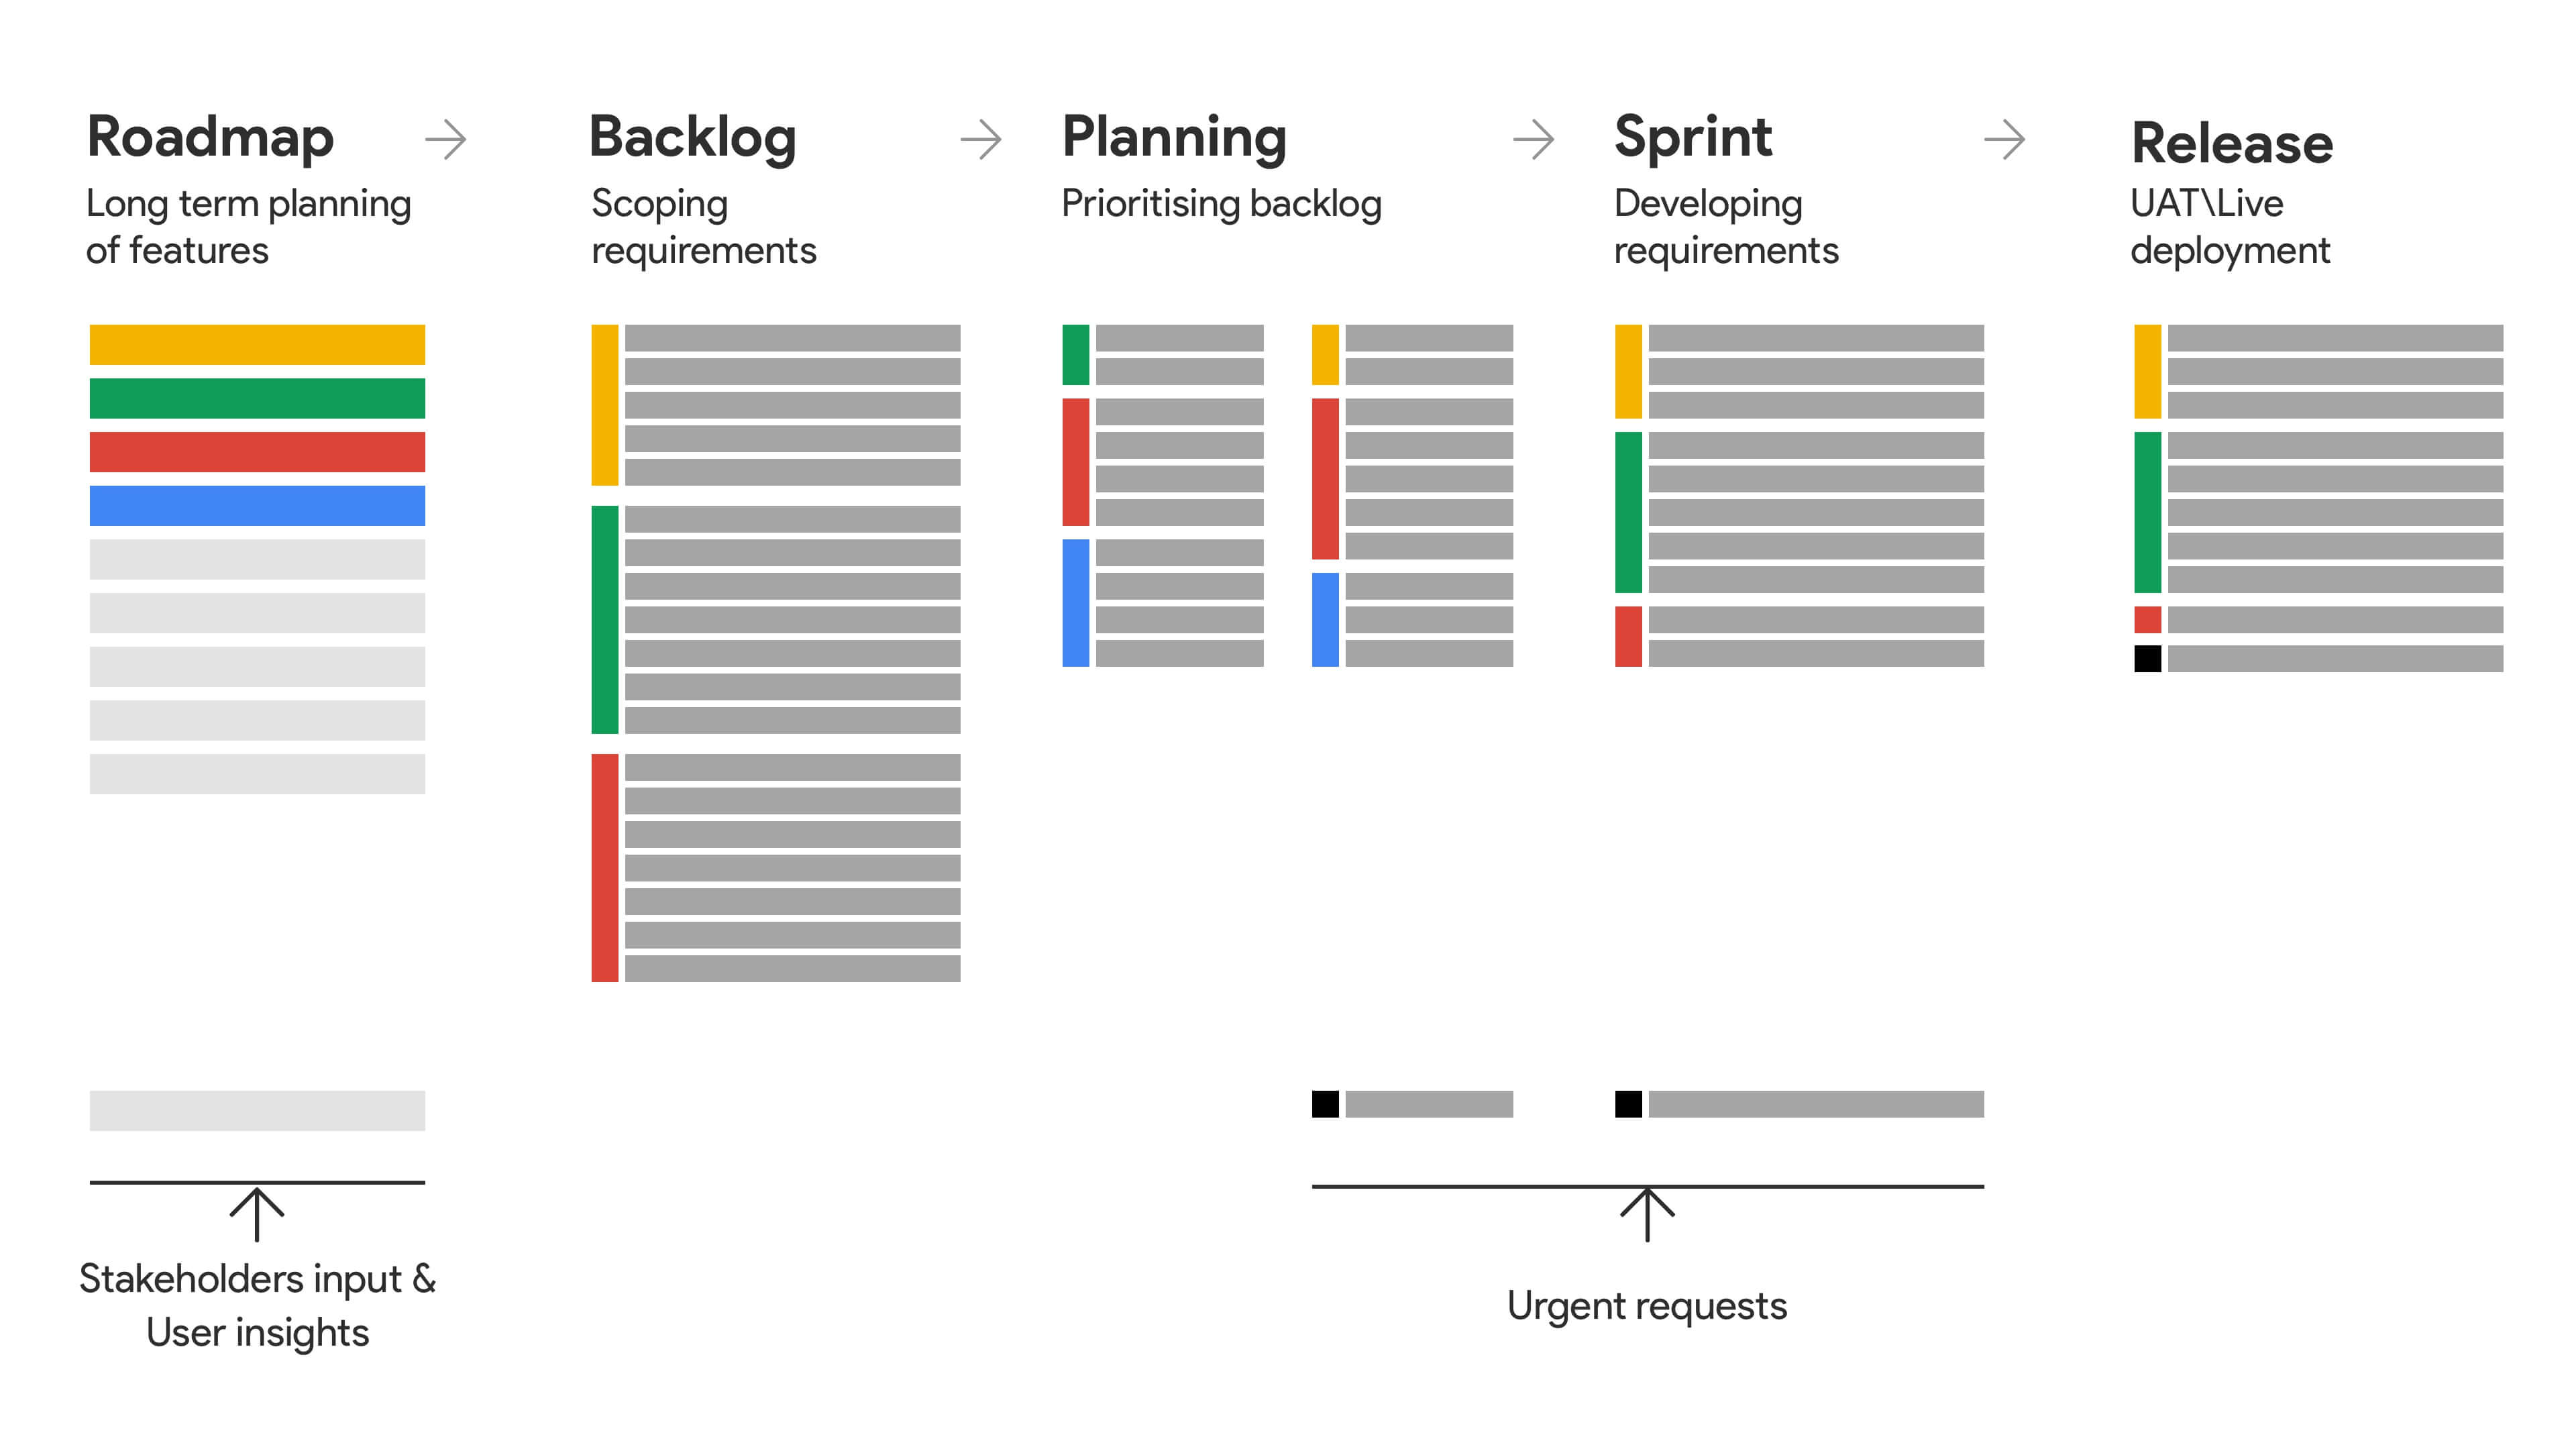 Our Agile approach from Roadmap to Release